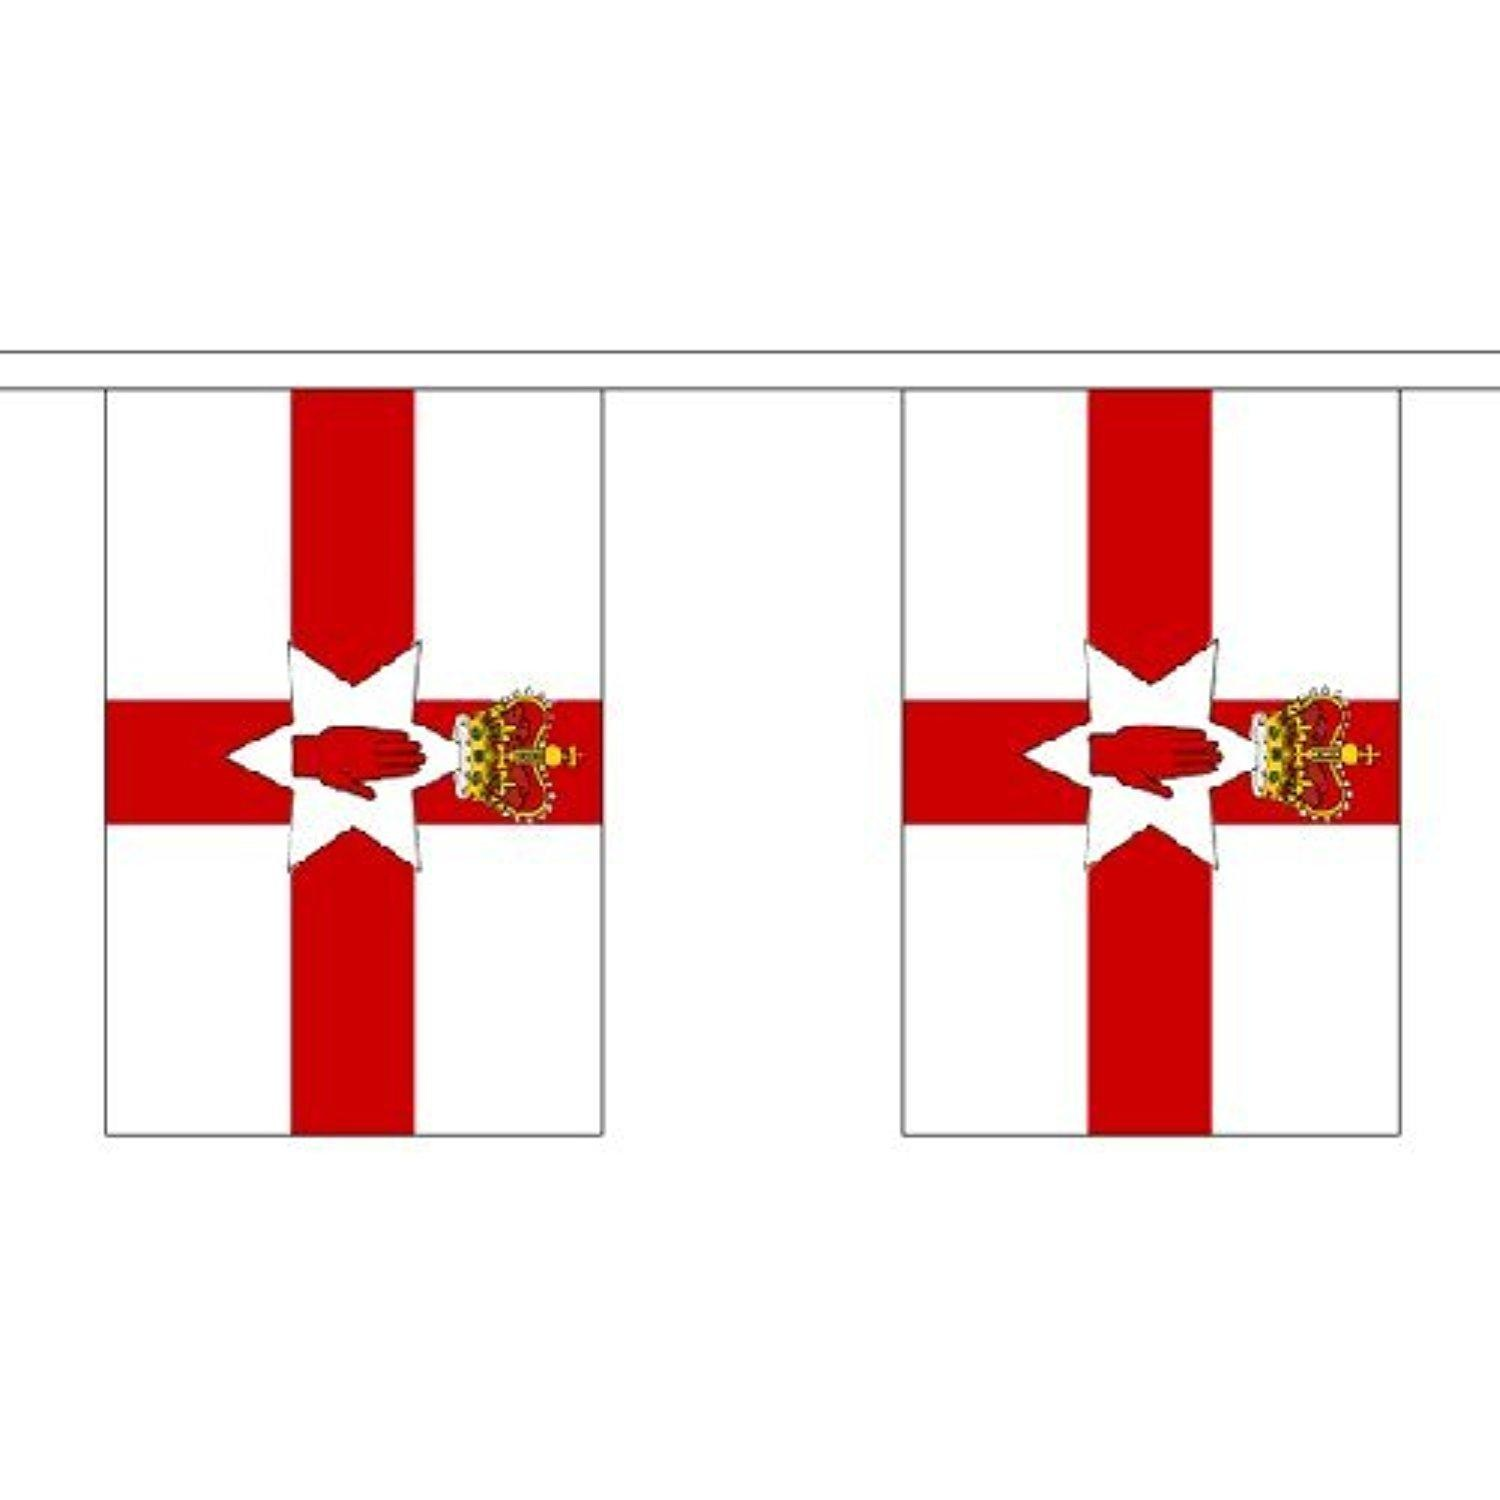 Northern Ireland Giant Bunting (30 Large Flags) 18.25M Or 60Ft by Northern Ireland